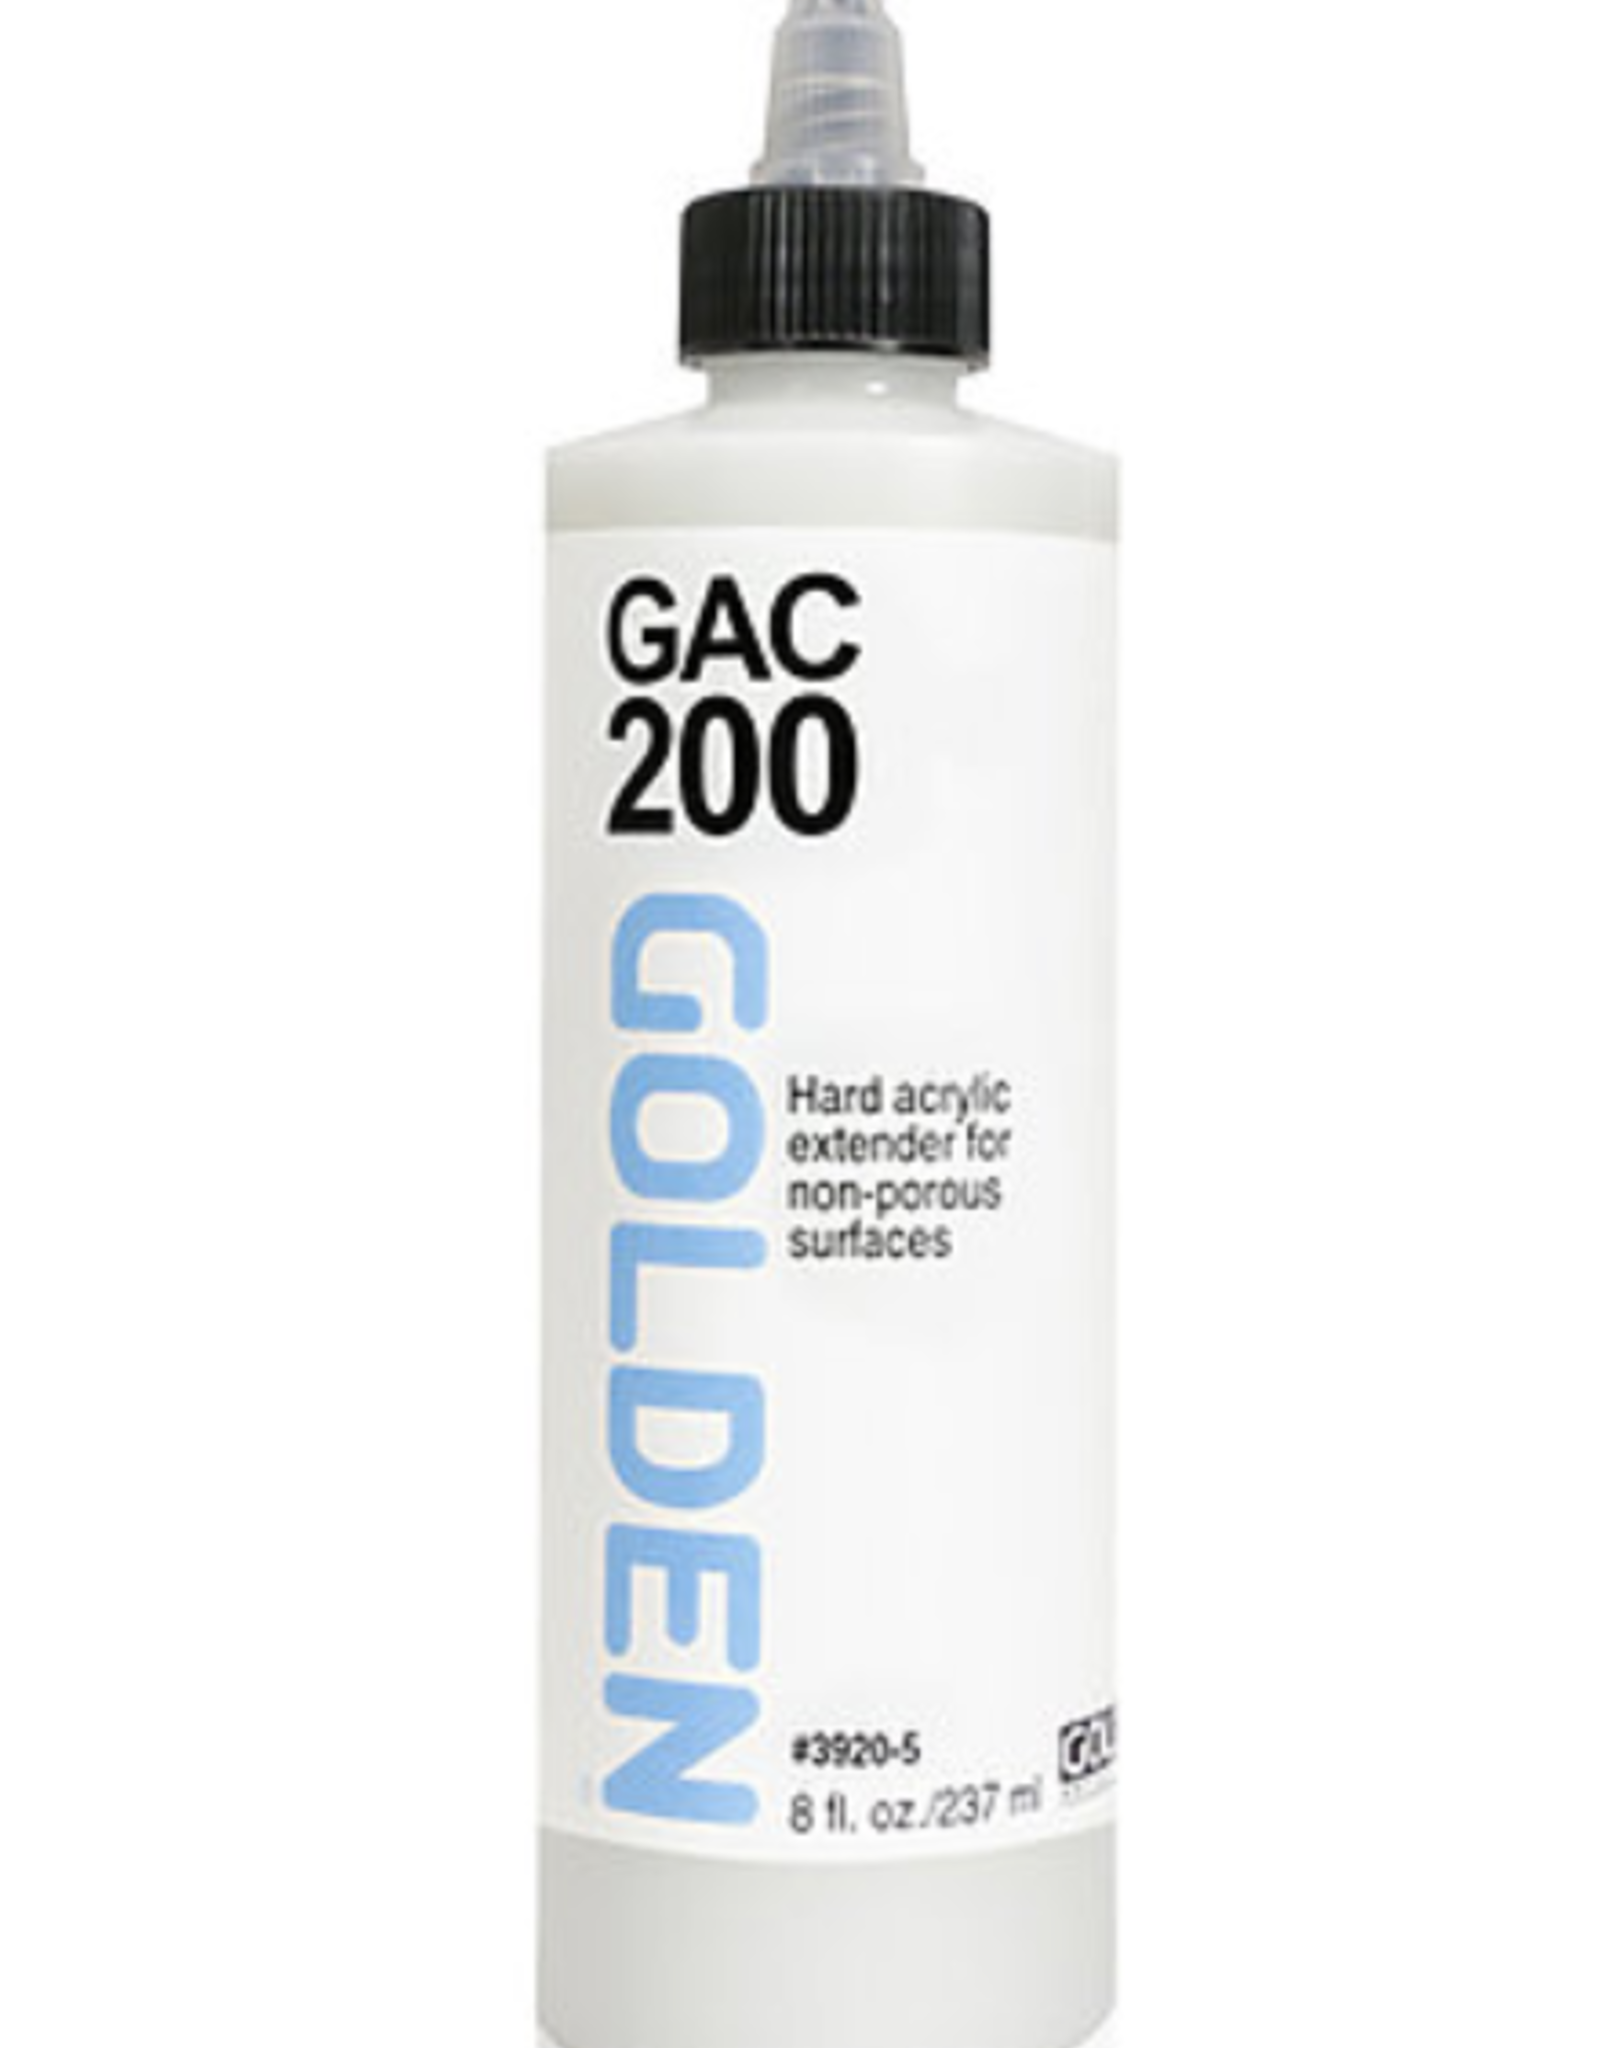 GAC 200, Golden Acrylic Polymer for Increasing Film Hardness, Quart 32oz